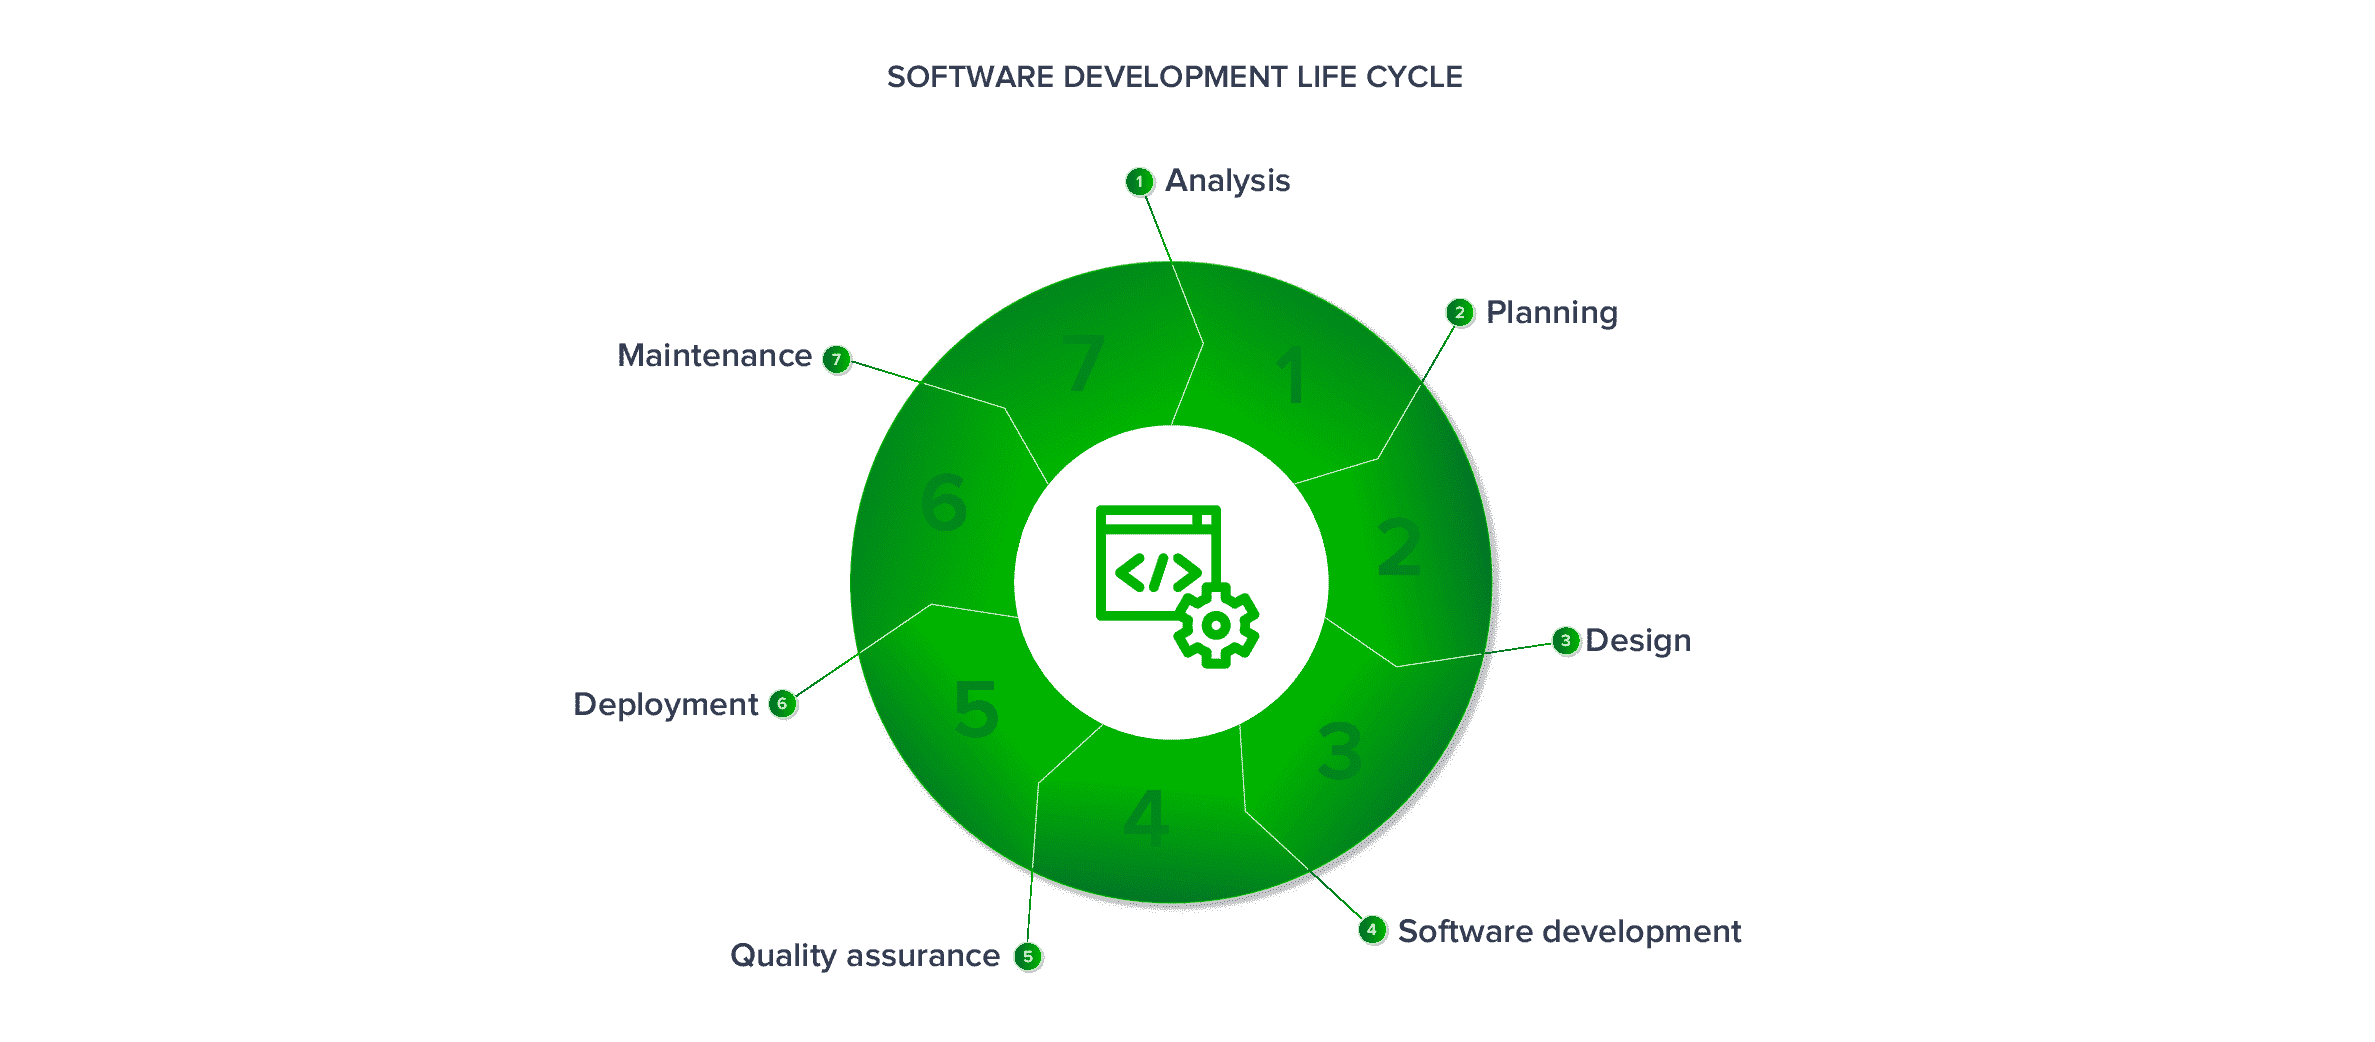 Software Development Life Cycle - IT Outsourcing and Staff Augmentation